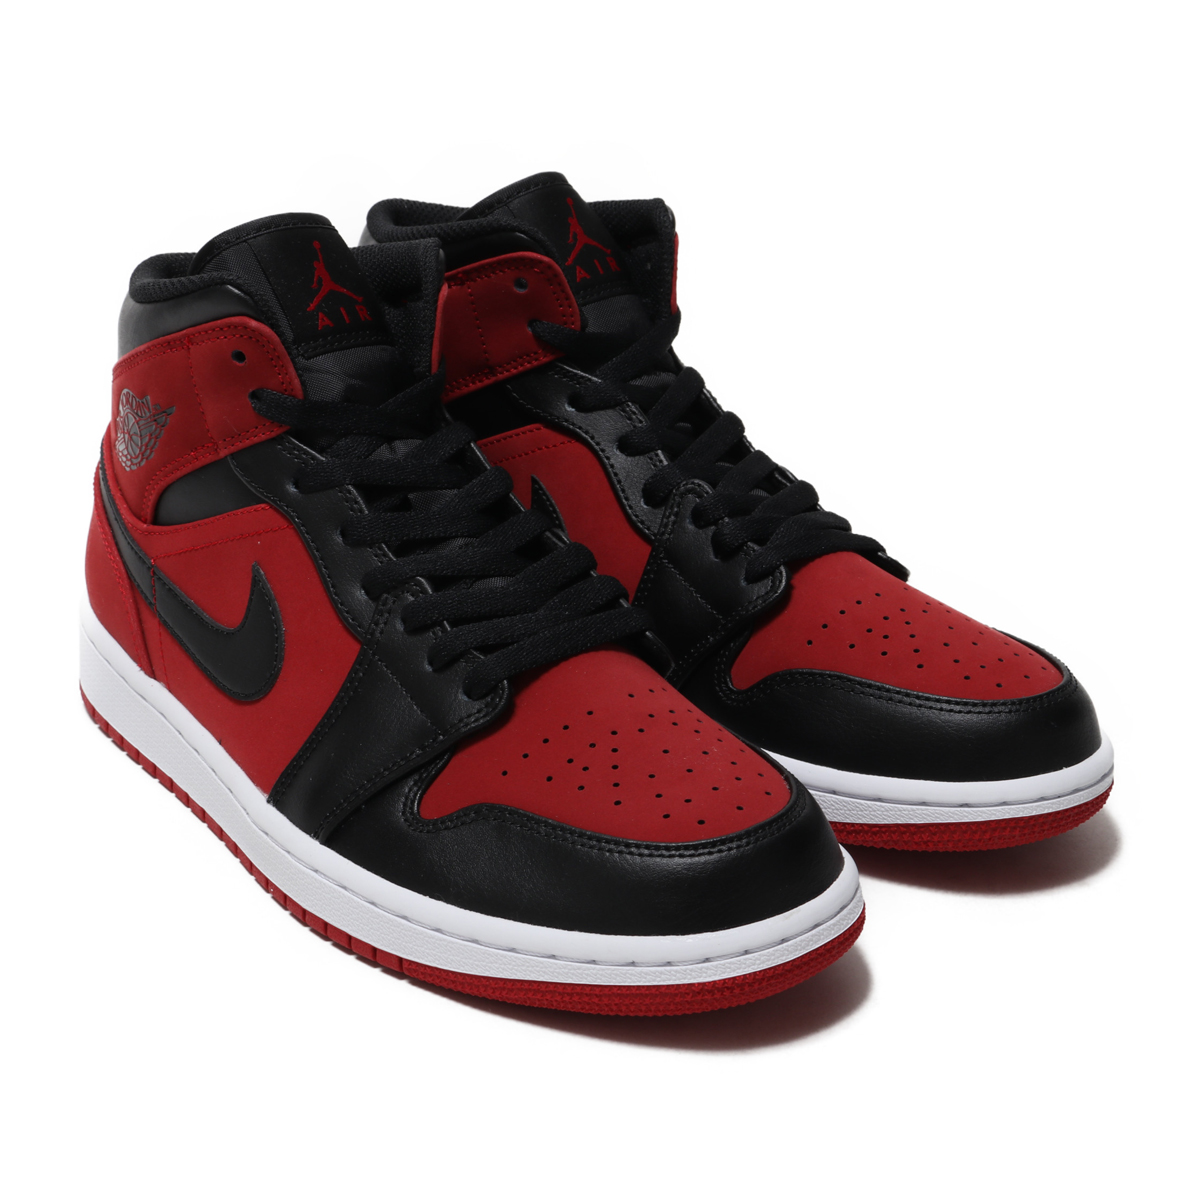 901ac3b32101 The Air Jordan 1 mid images original AJ1. The design which reminds